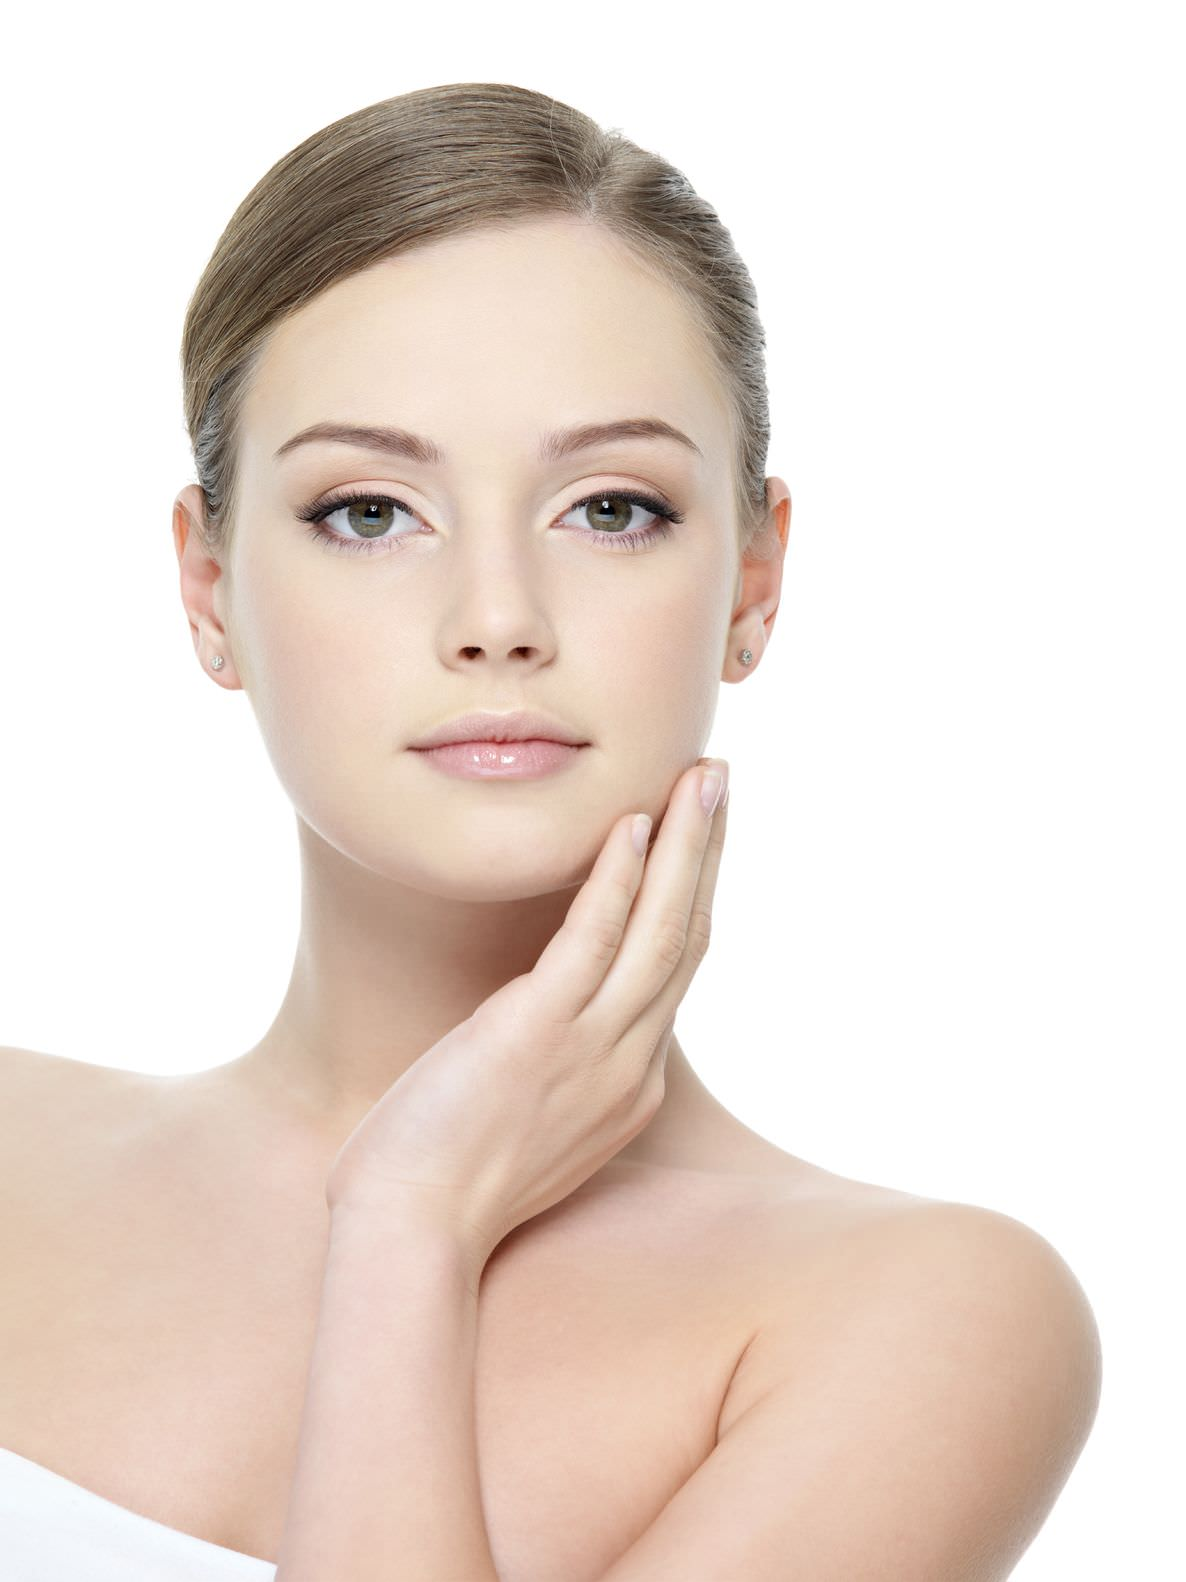 Chin augmentation in Atlanta